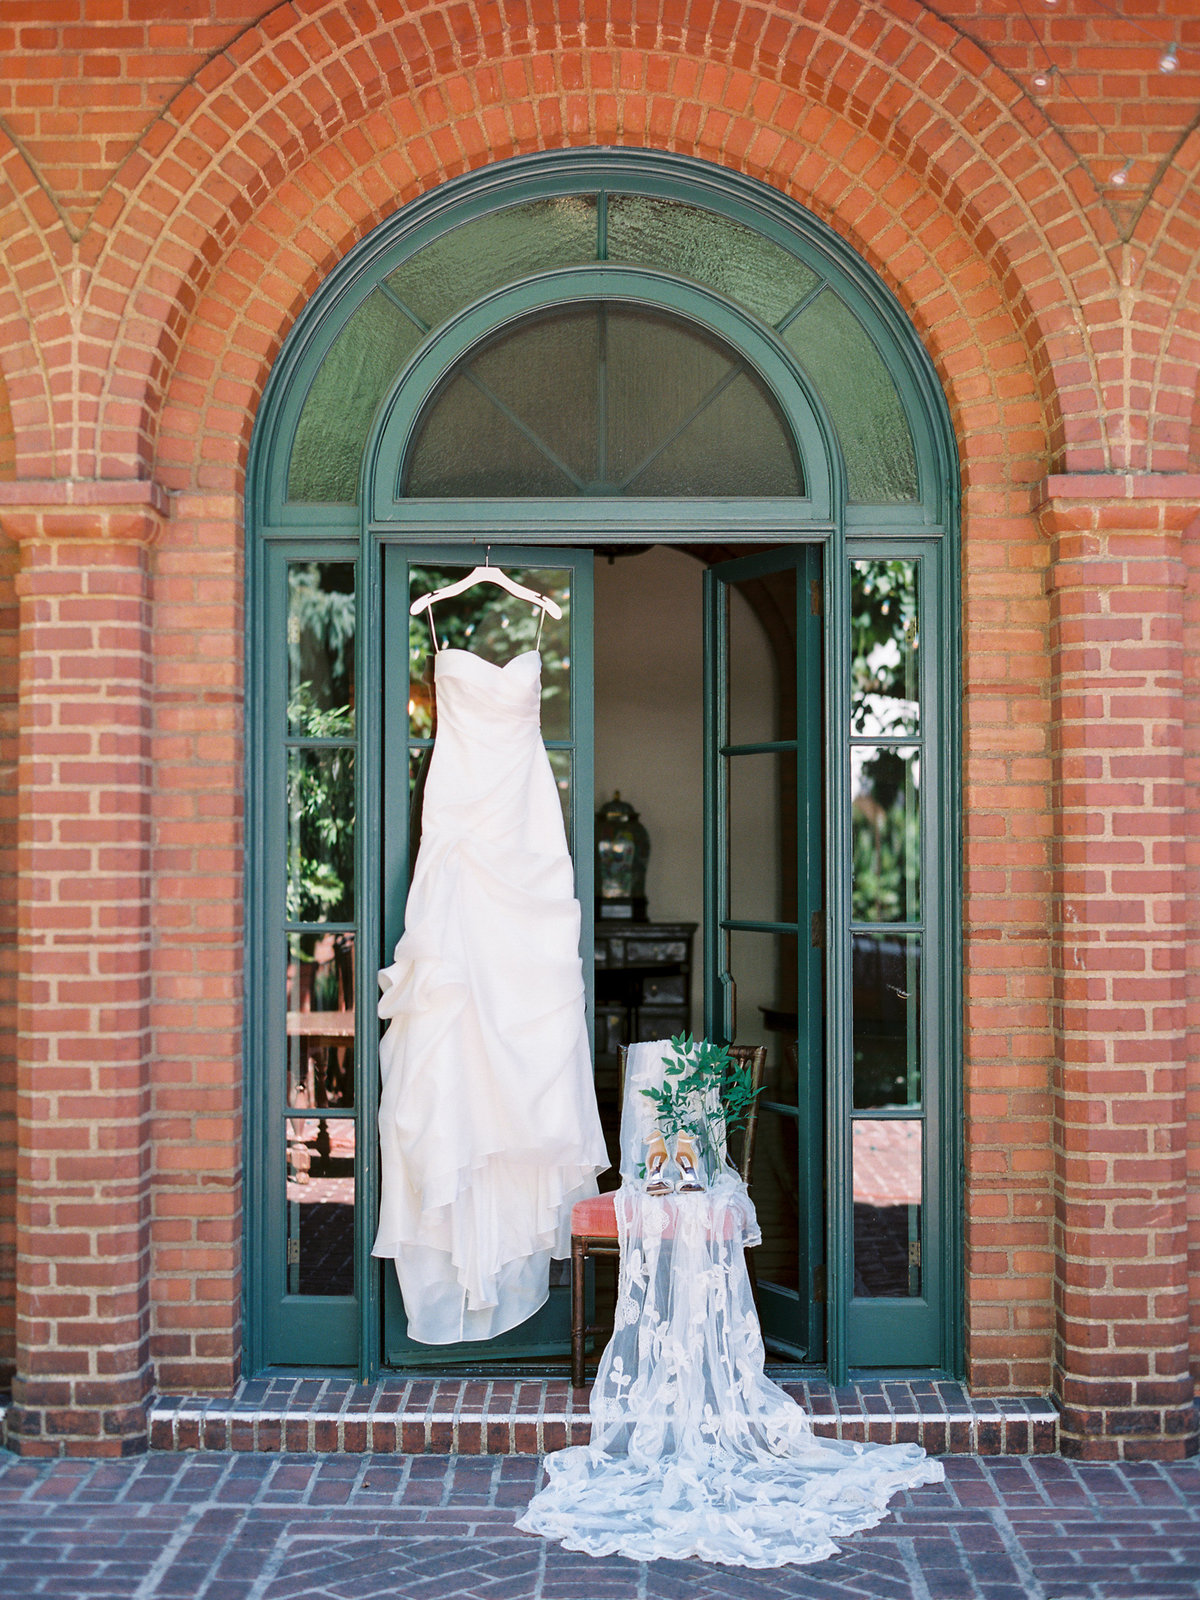 wedding dress hanging at the town club in portland, oregon